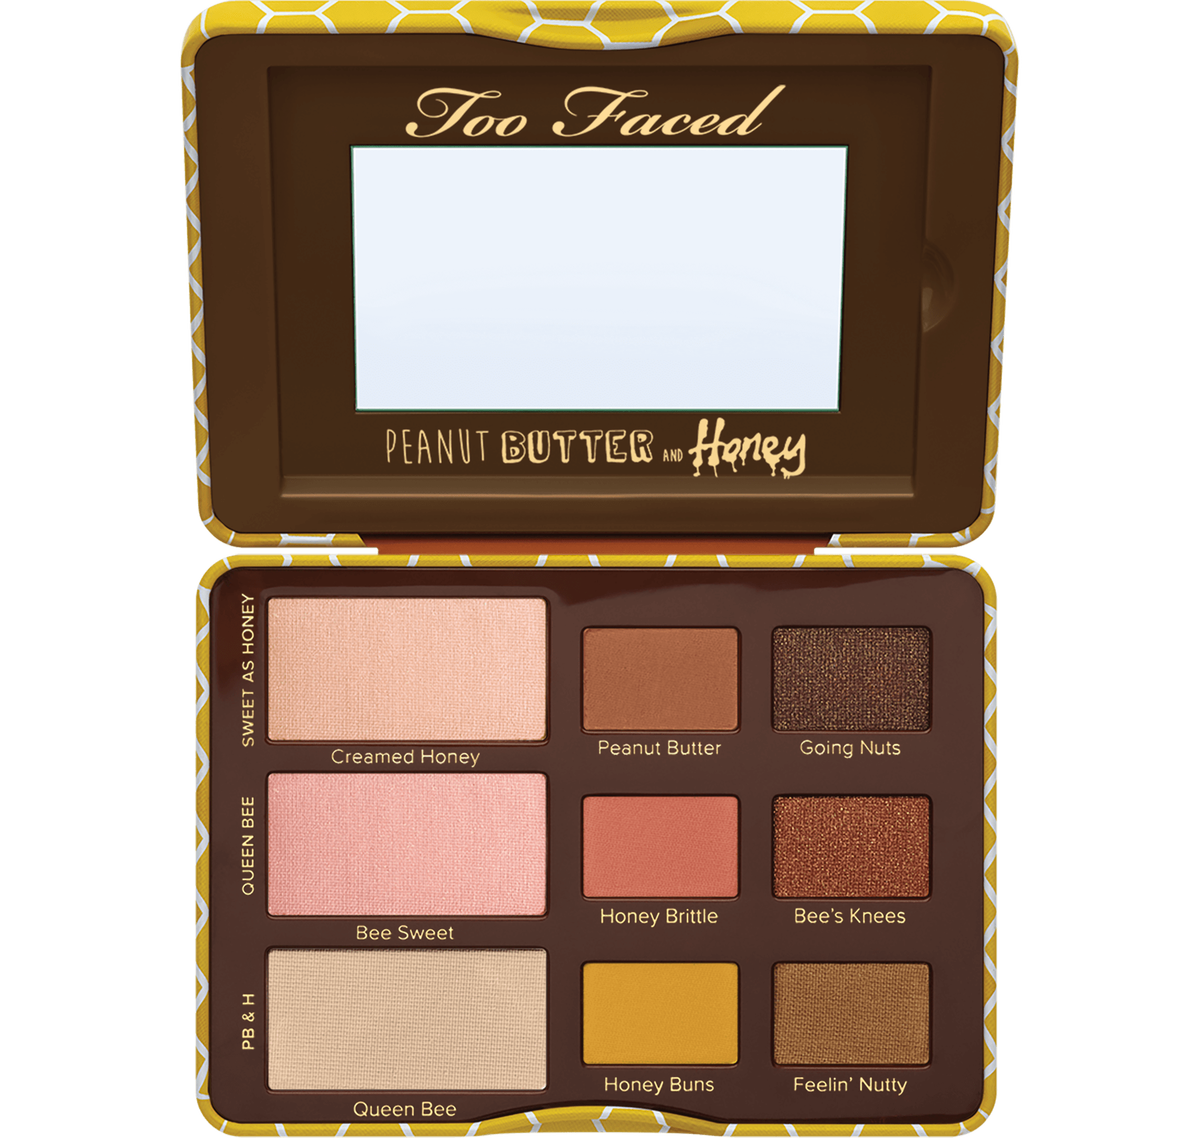 Peanut Butter and Honey Eye Shadow Palette Too Faced